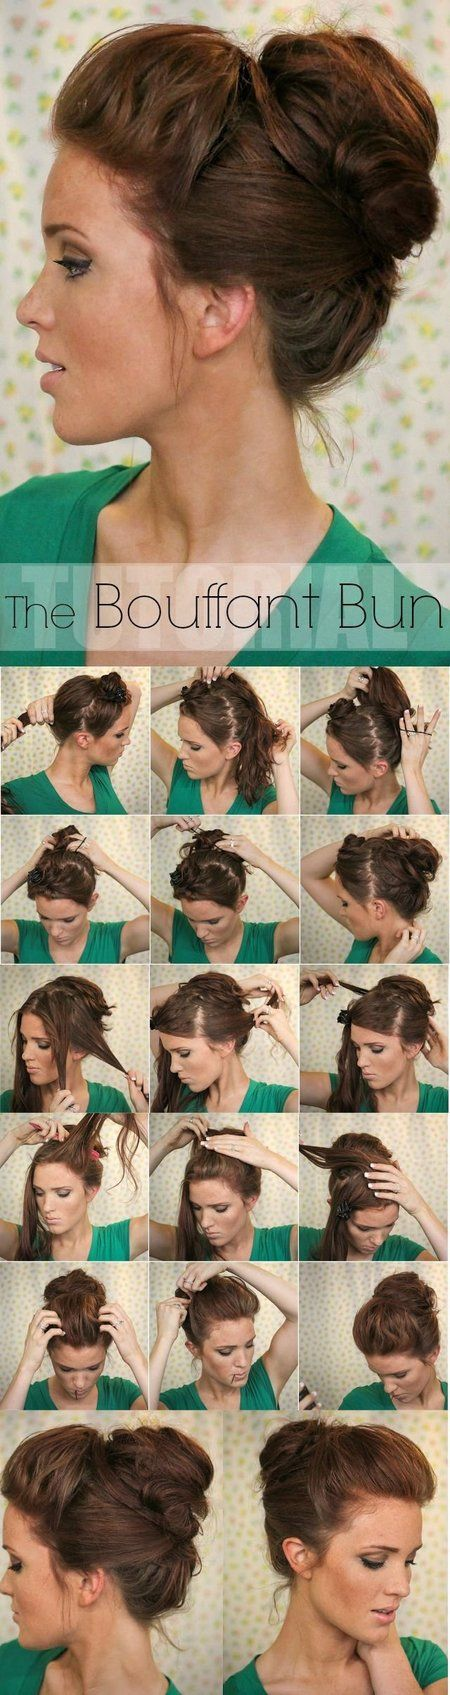 Bouffant Bun Hair Tutorial. Perfect for the Wedding day! #bride